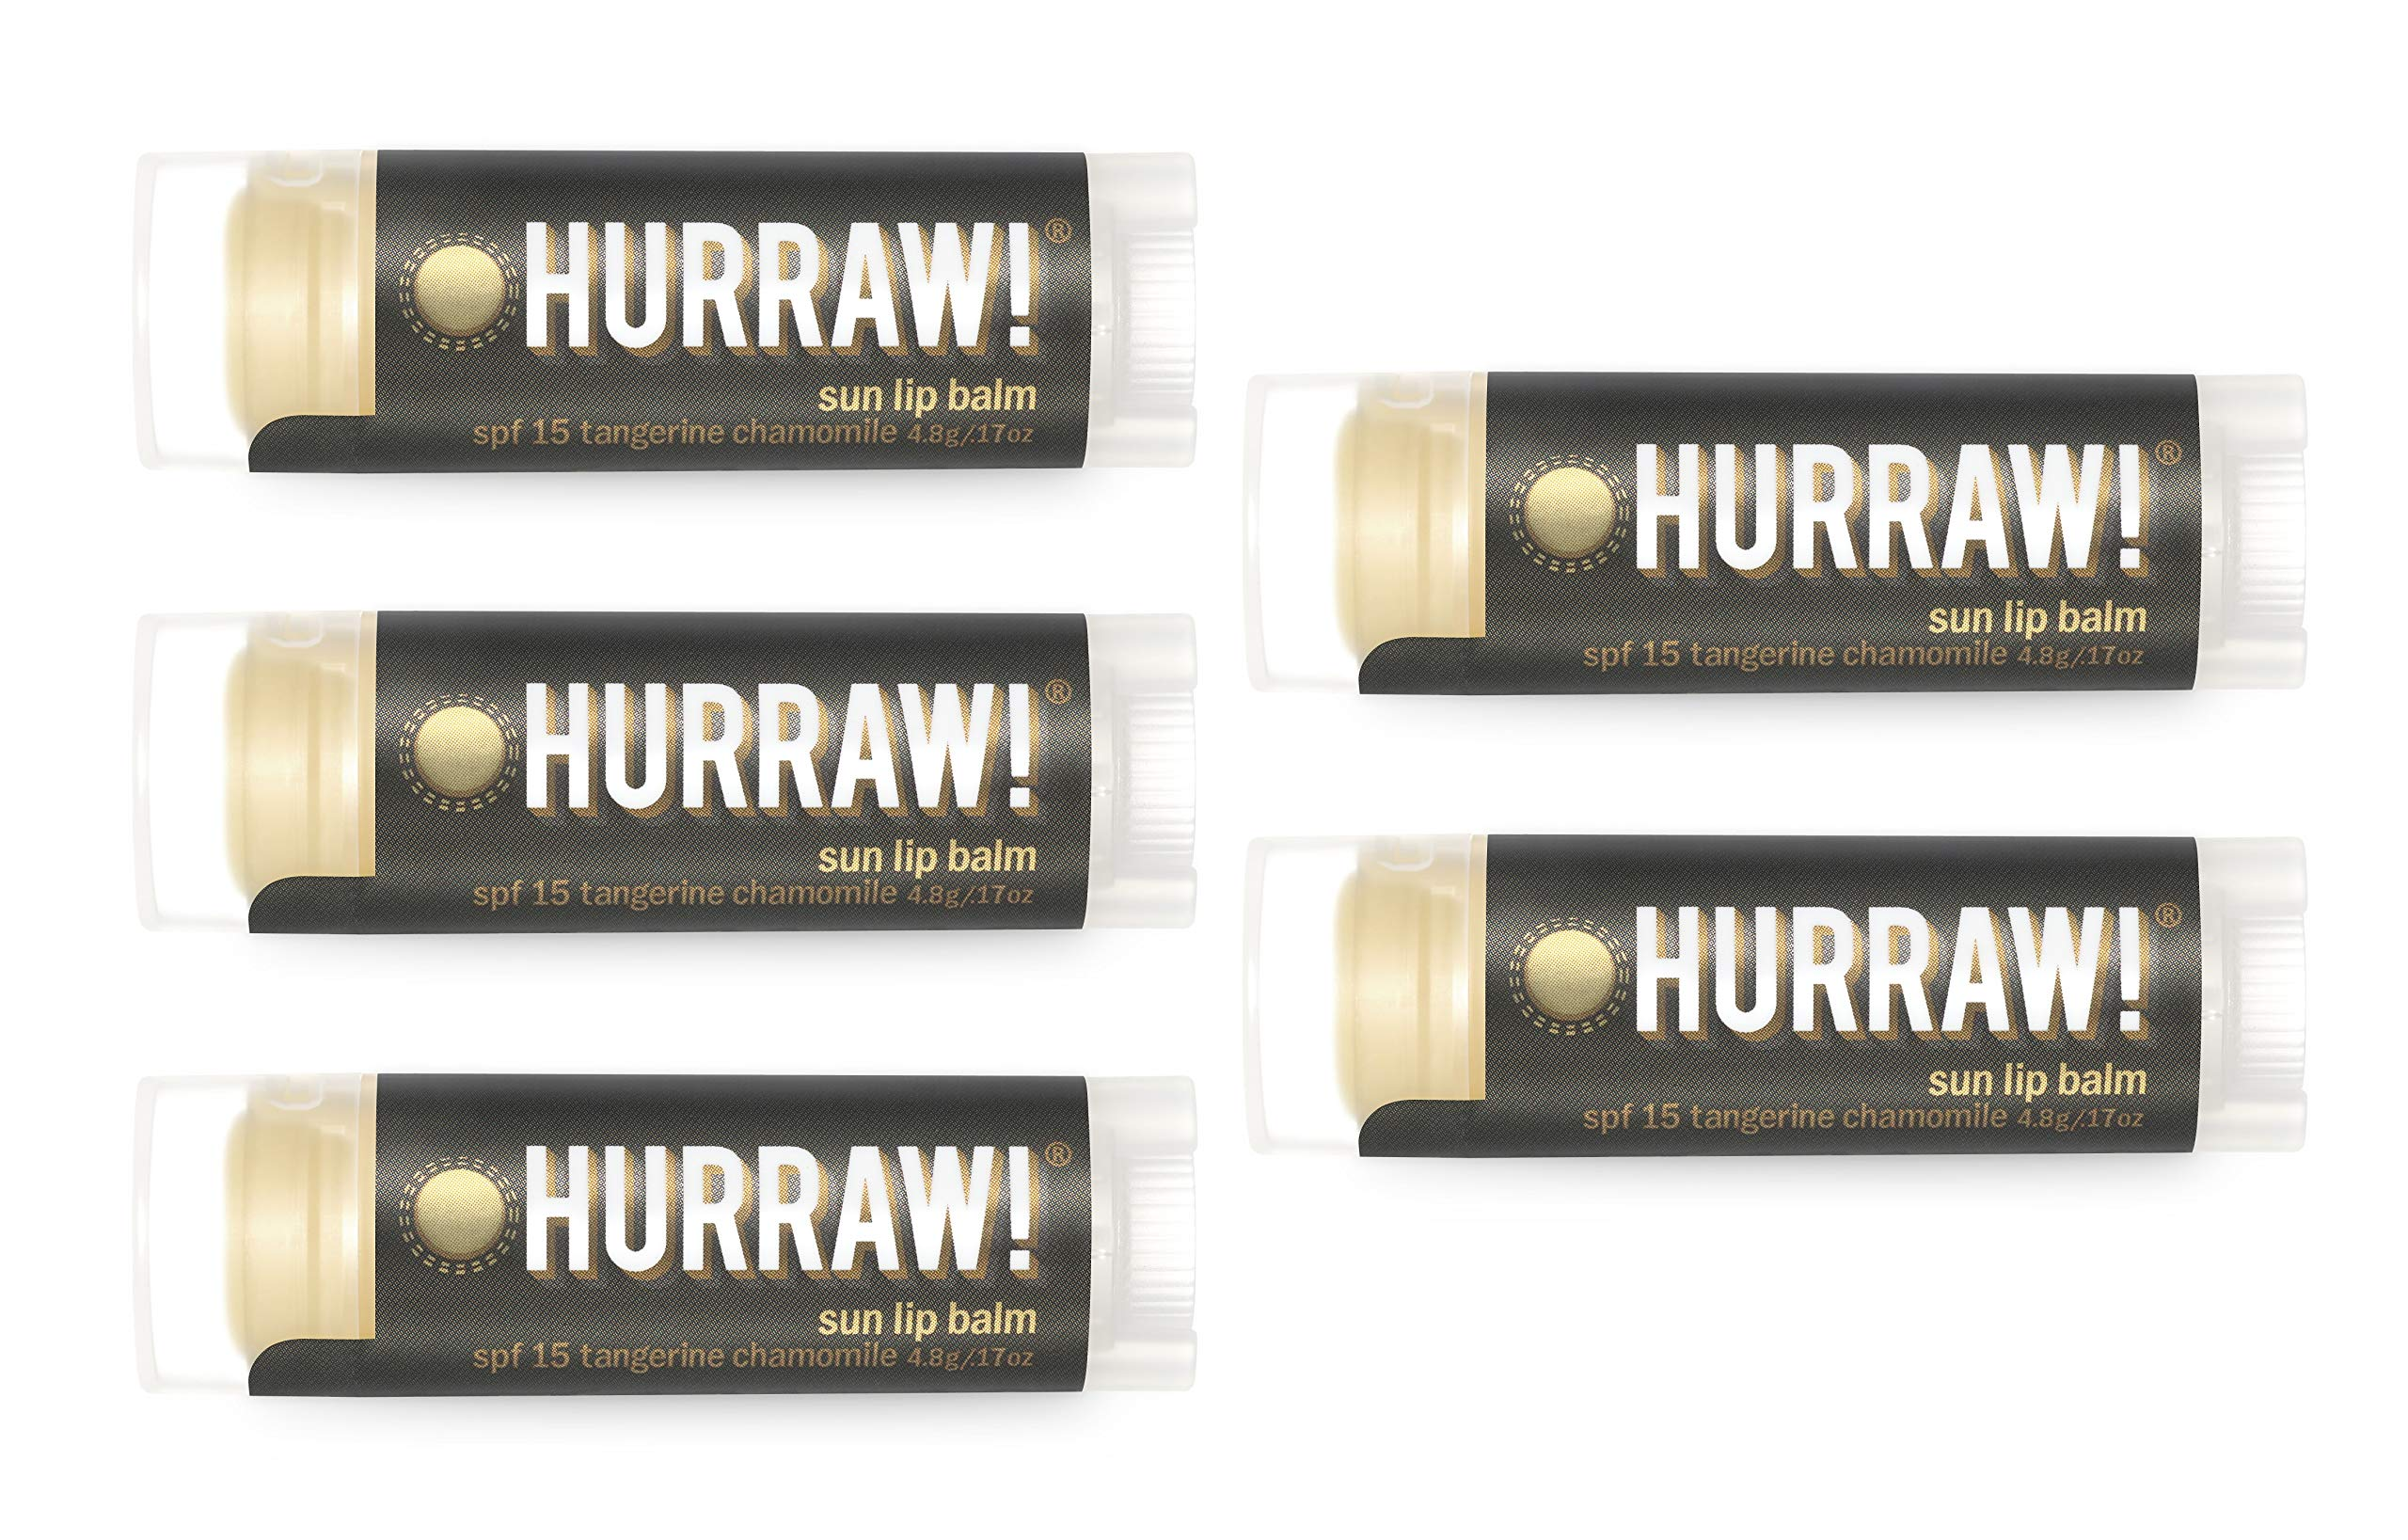 Hurraw Sun Protection (SPF 15, Tangerine, Chamomile) Lip Balm, 5 Pack – Organic, Certified Vegan, Cruelty and Gluten Free. Non-GMO, 100% Natural Ingredients. Bee, Shea, Soy and Palm Free. Made in USA